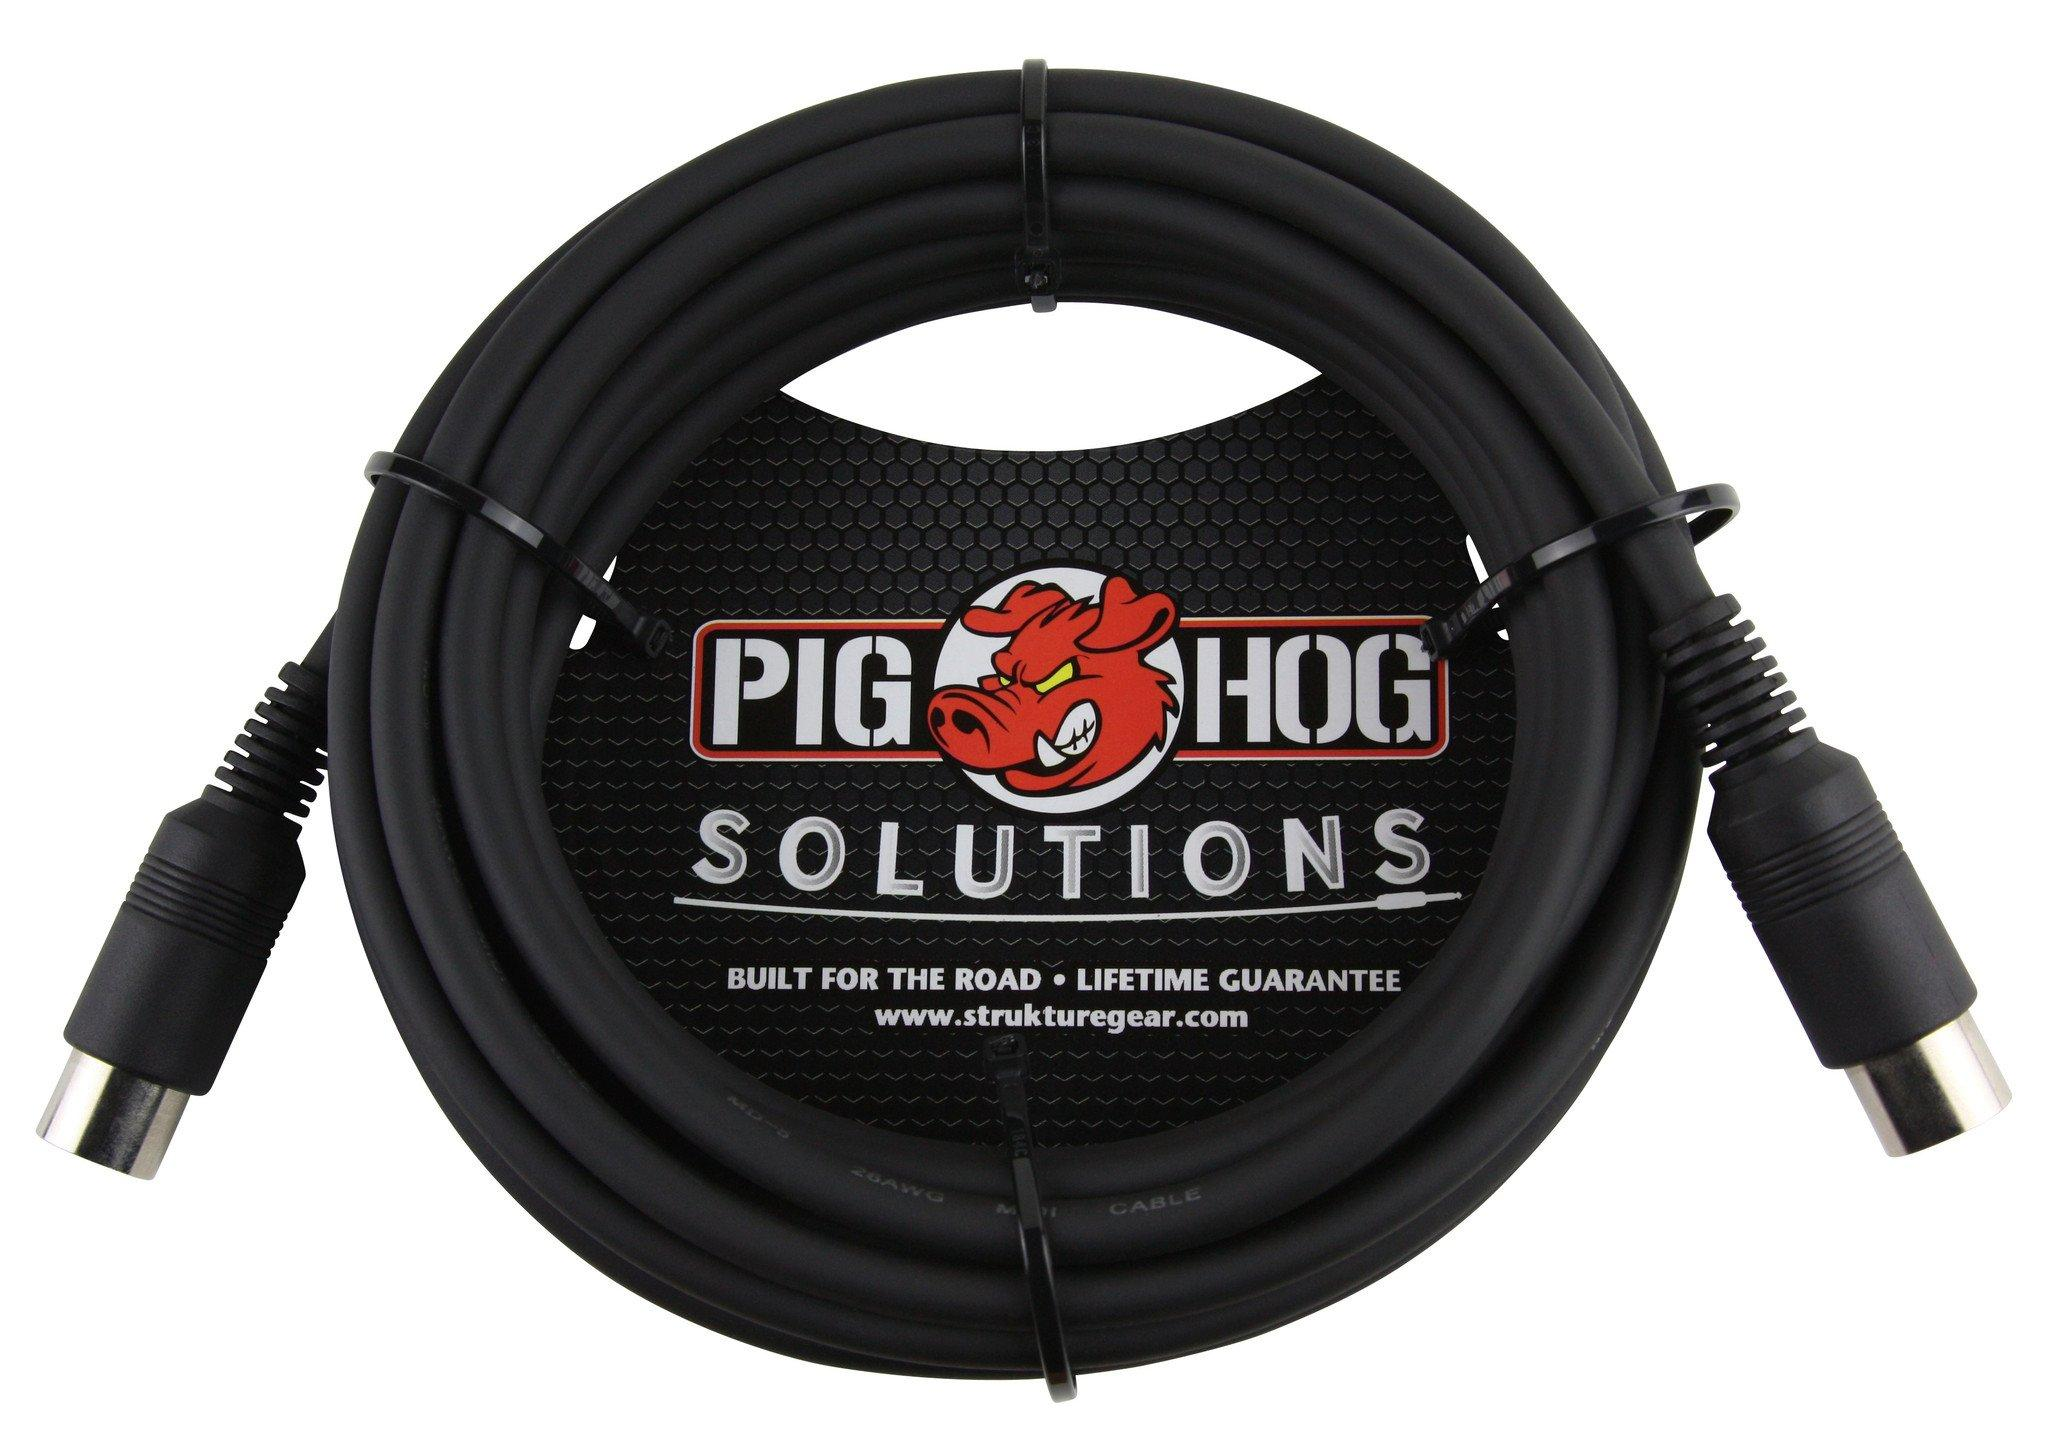 Pig Hog Solutions - 15ft MIDI Cable